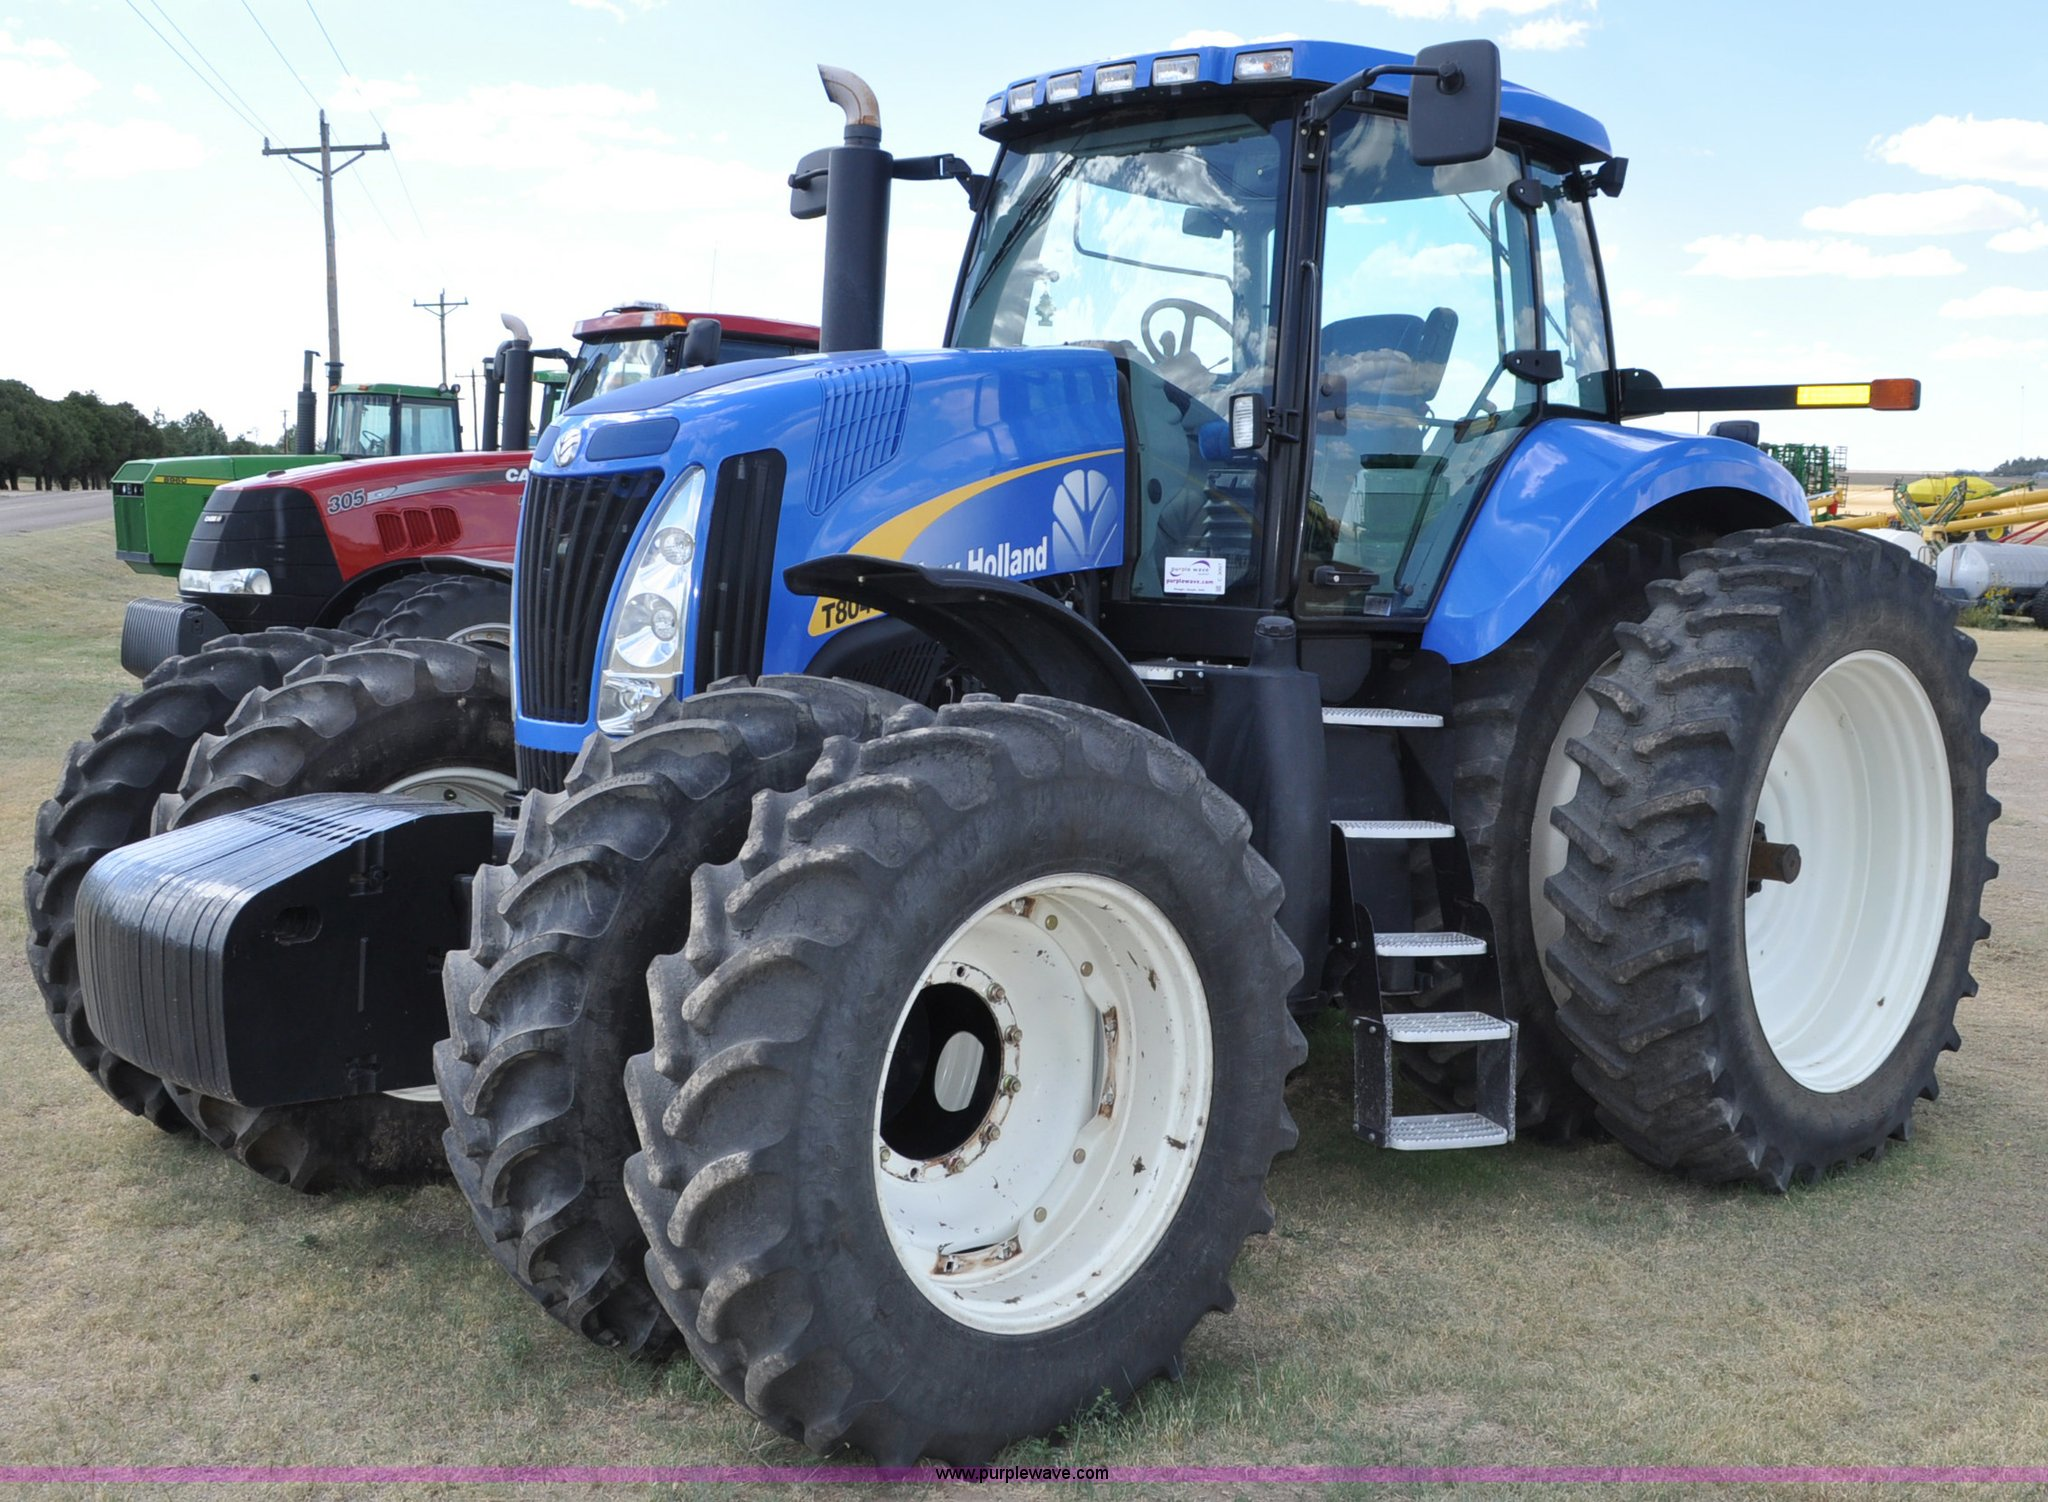 2009 new holland t8040 mfwd tractor item c3007 sold wed rh purplewave com 1 64 New Holland 1 64 New Holland